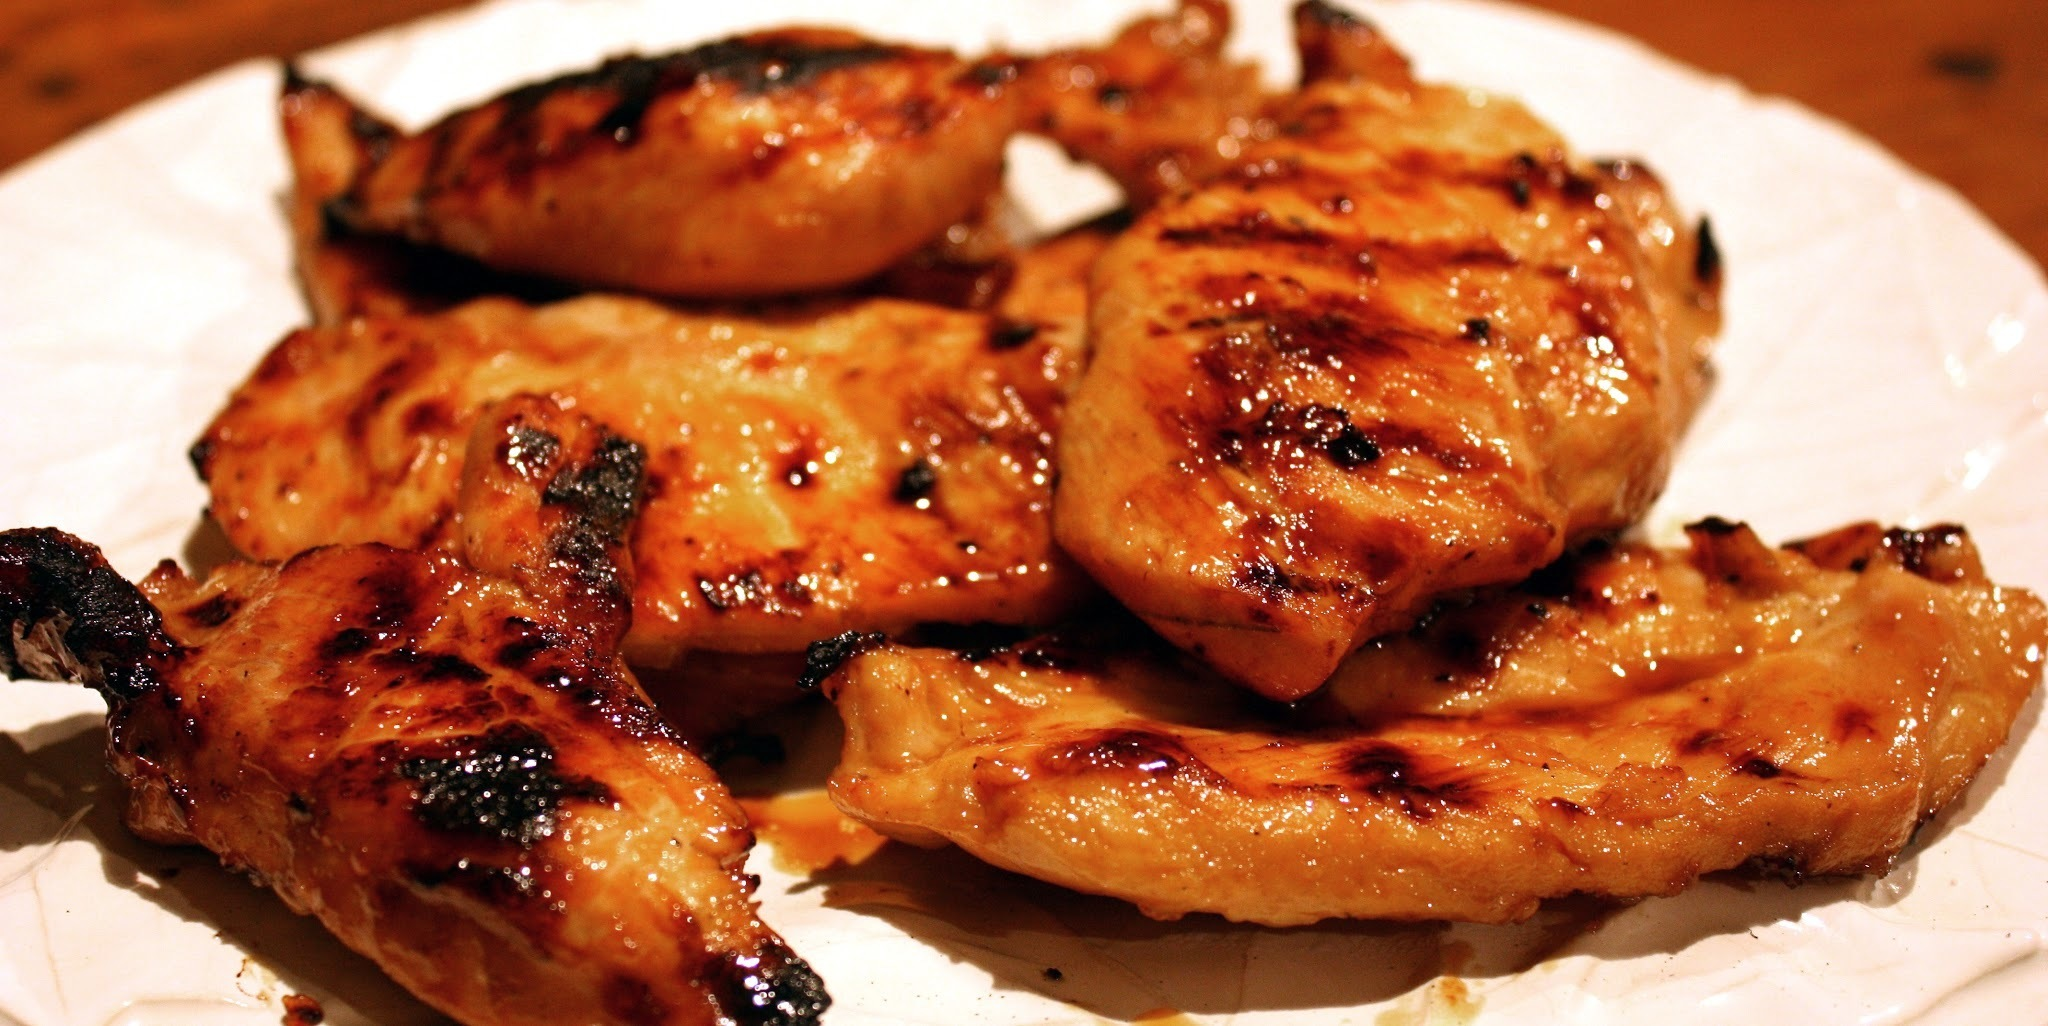 Grilled Chicken #PhilippineRestaurantMenu